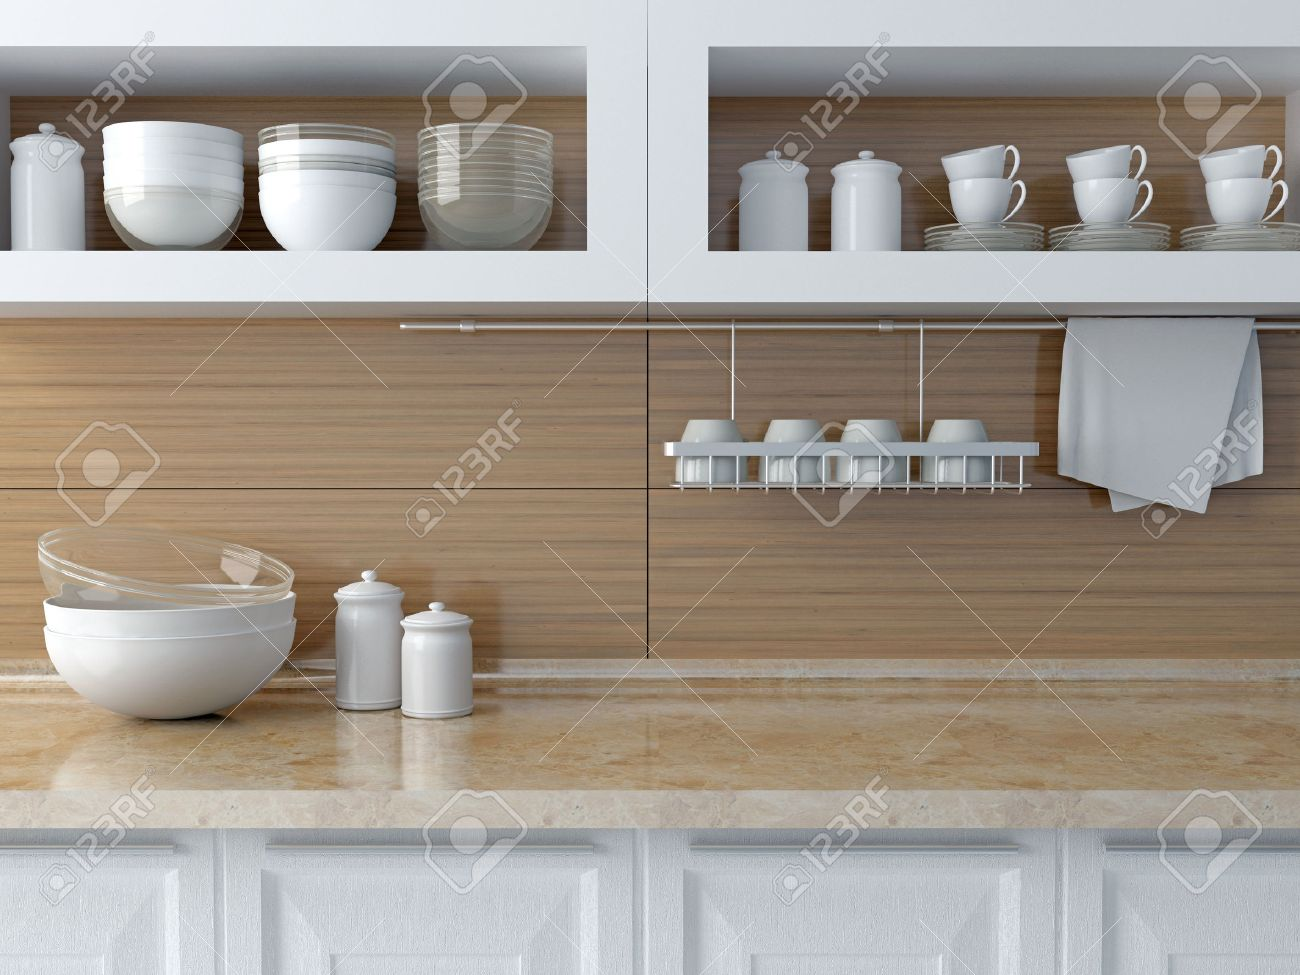 kitchenware stock photos royalty free kitchenware images and pictures - kitchenware modern kitchen design white ceramic kitchenware on the marbleworktop plates